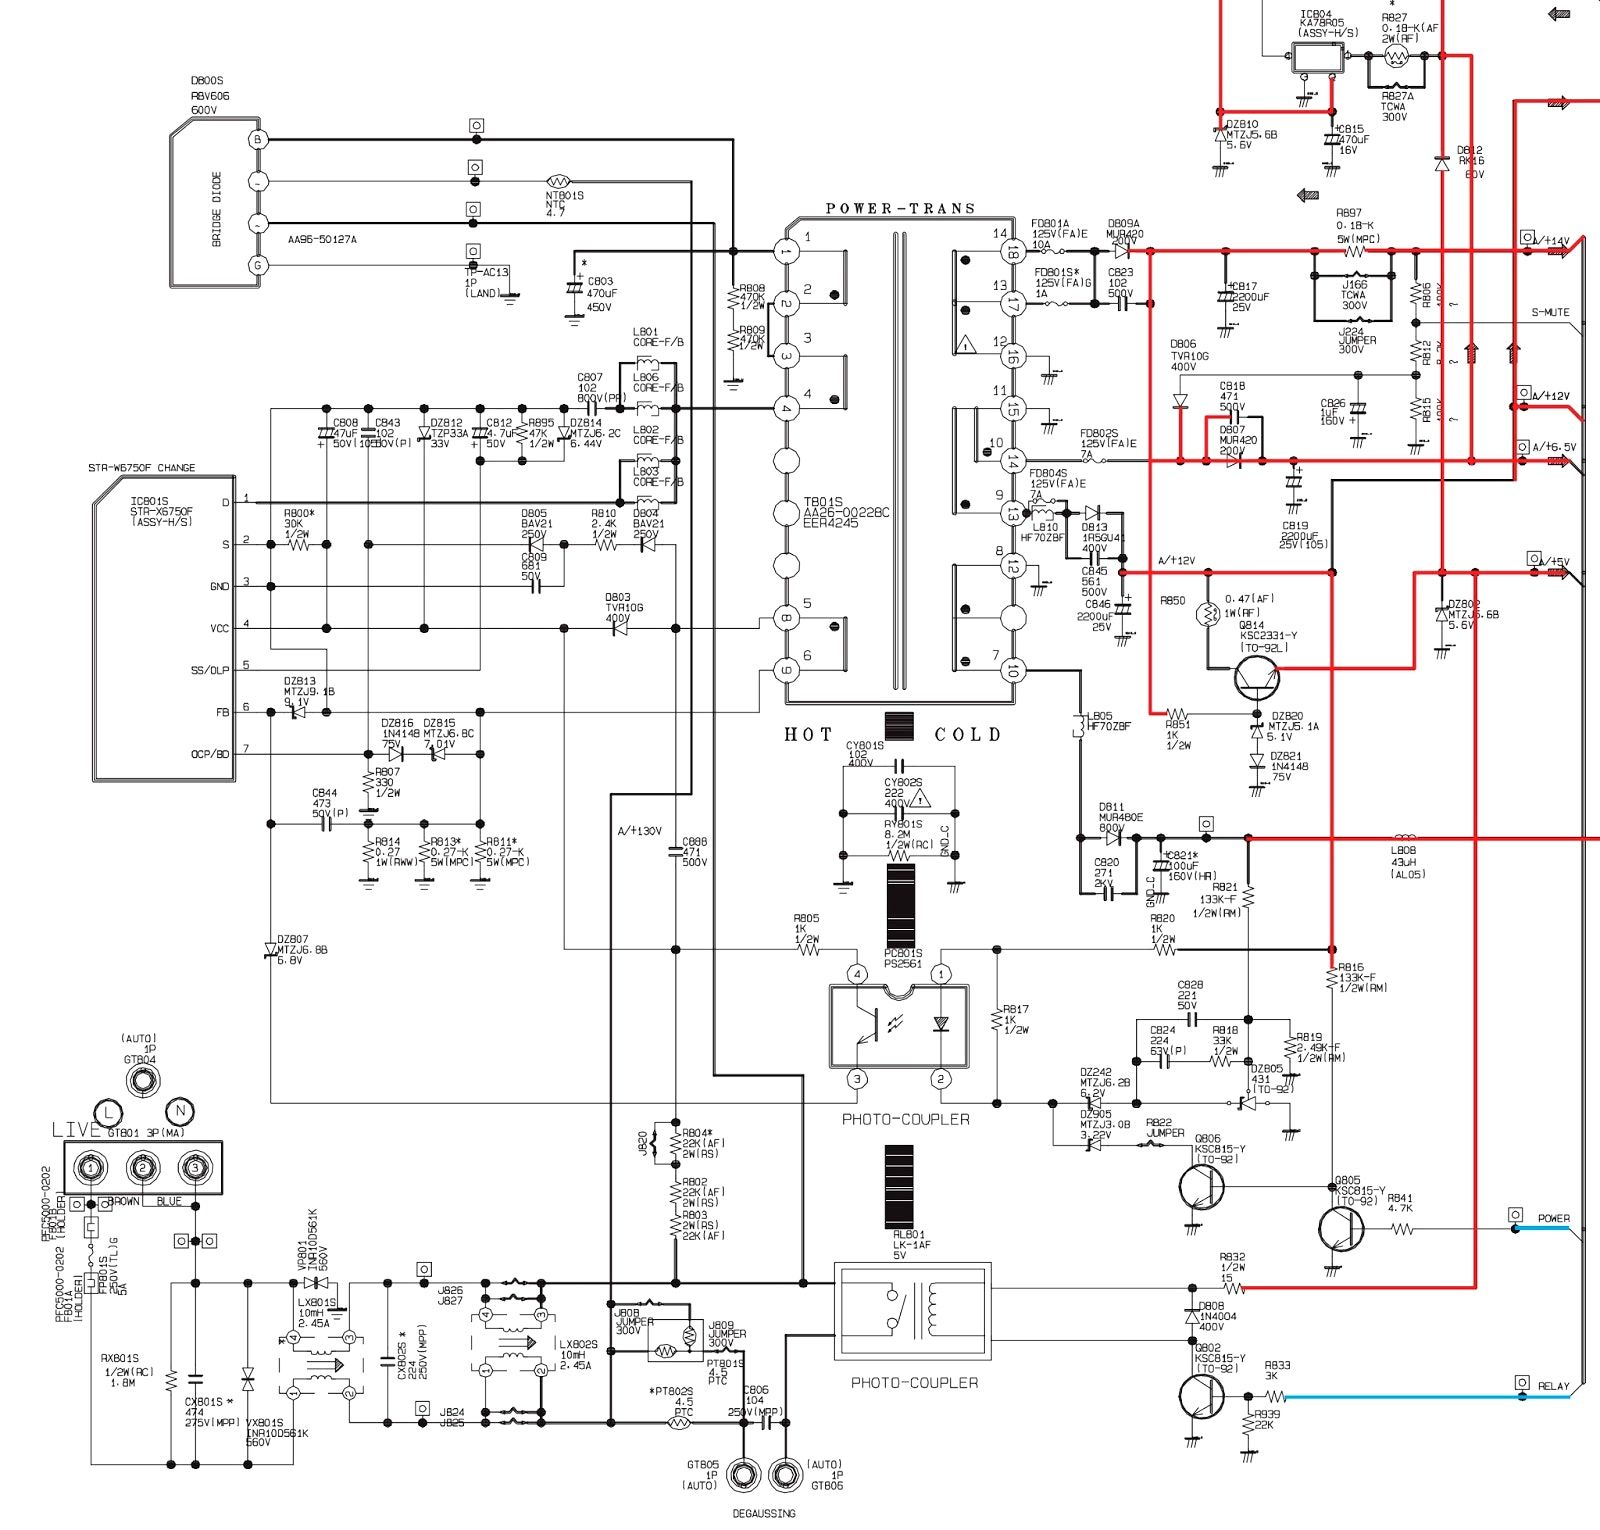 samsung led tv wiring schematic wiring diagrams the samsung usb wiring diagram led tv circuit diagram [ 1600 x 1530 Pixel ]